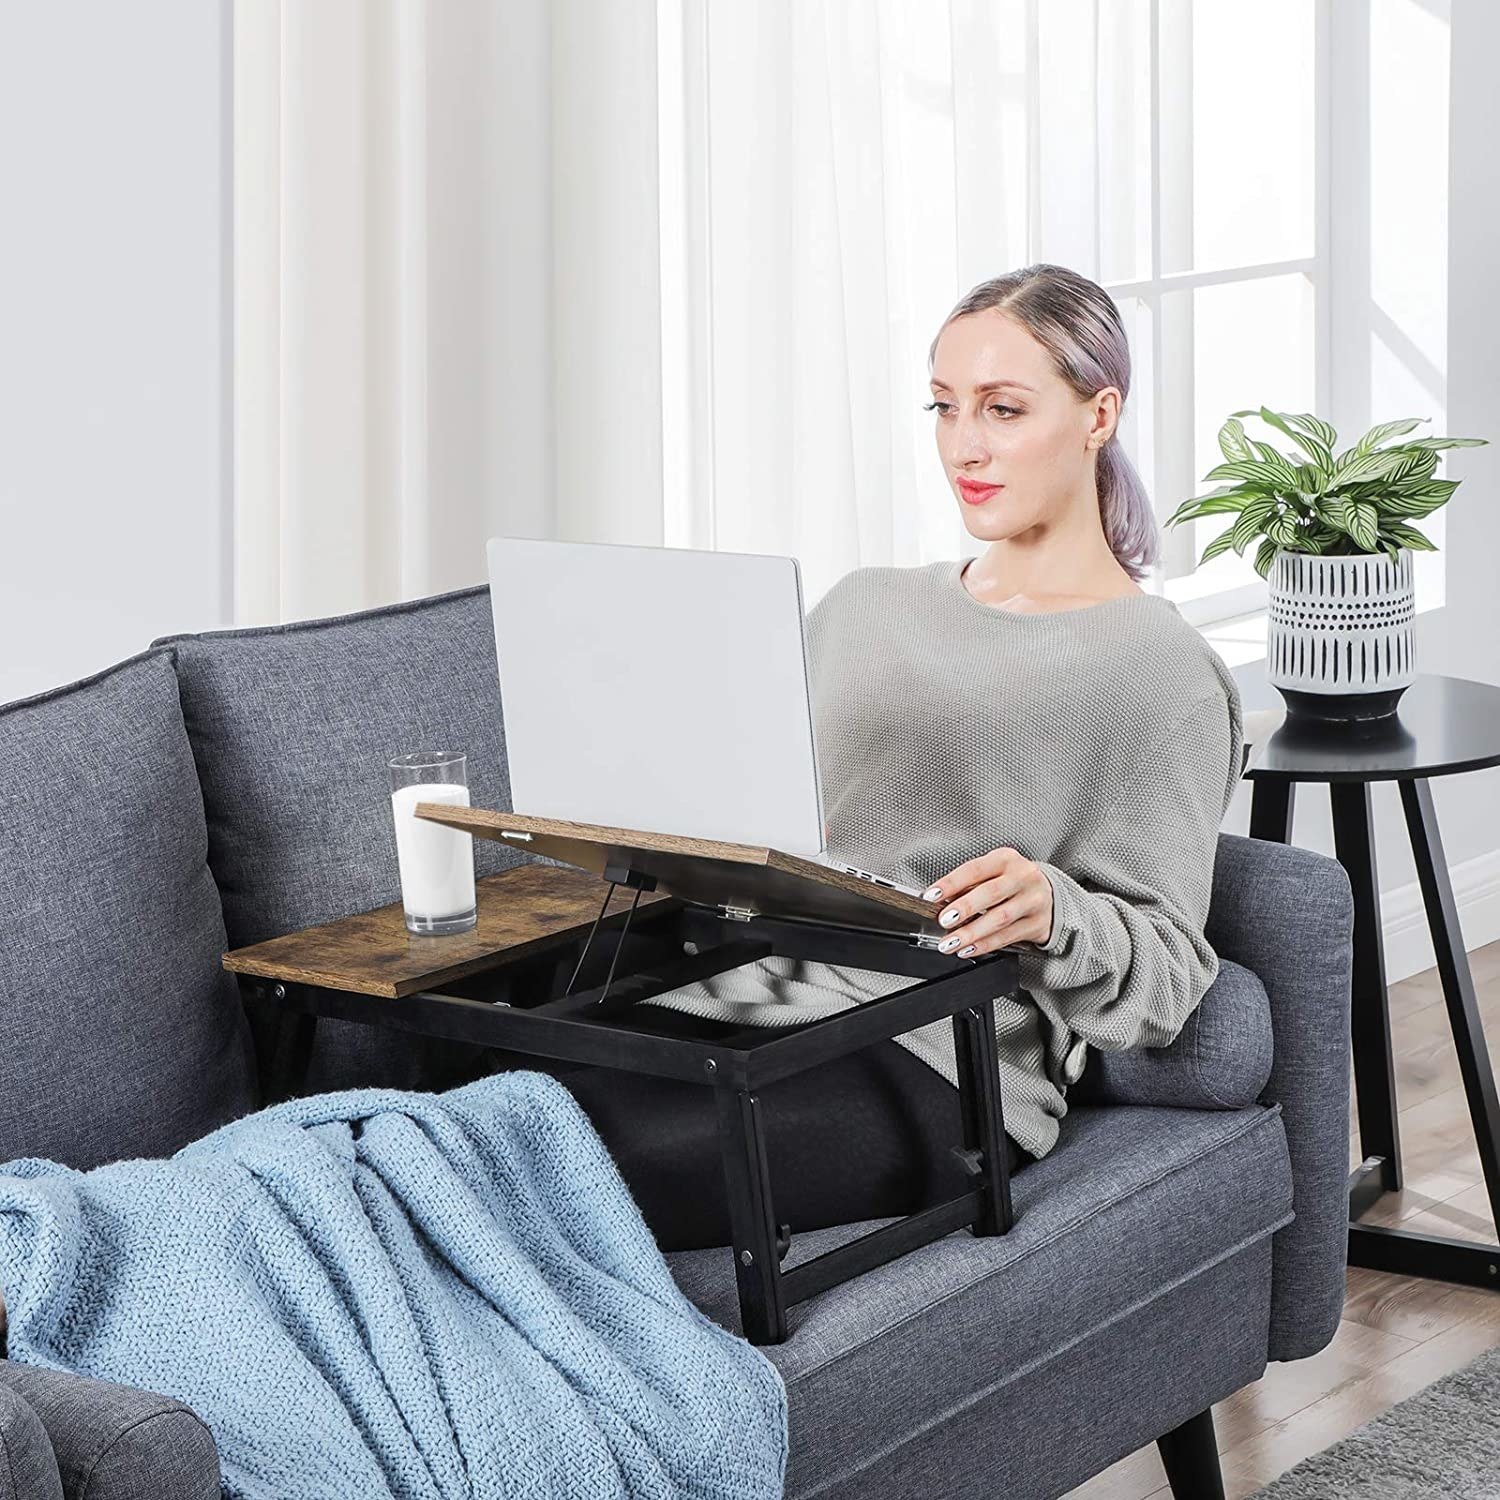 A person using the table while lying on a couch